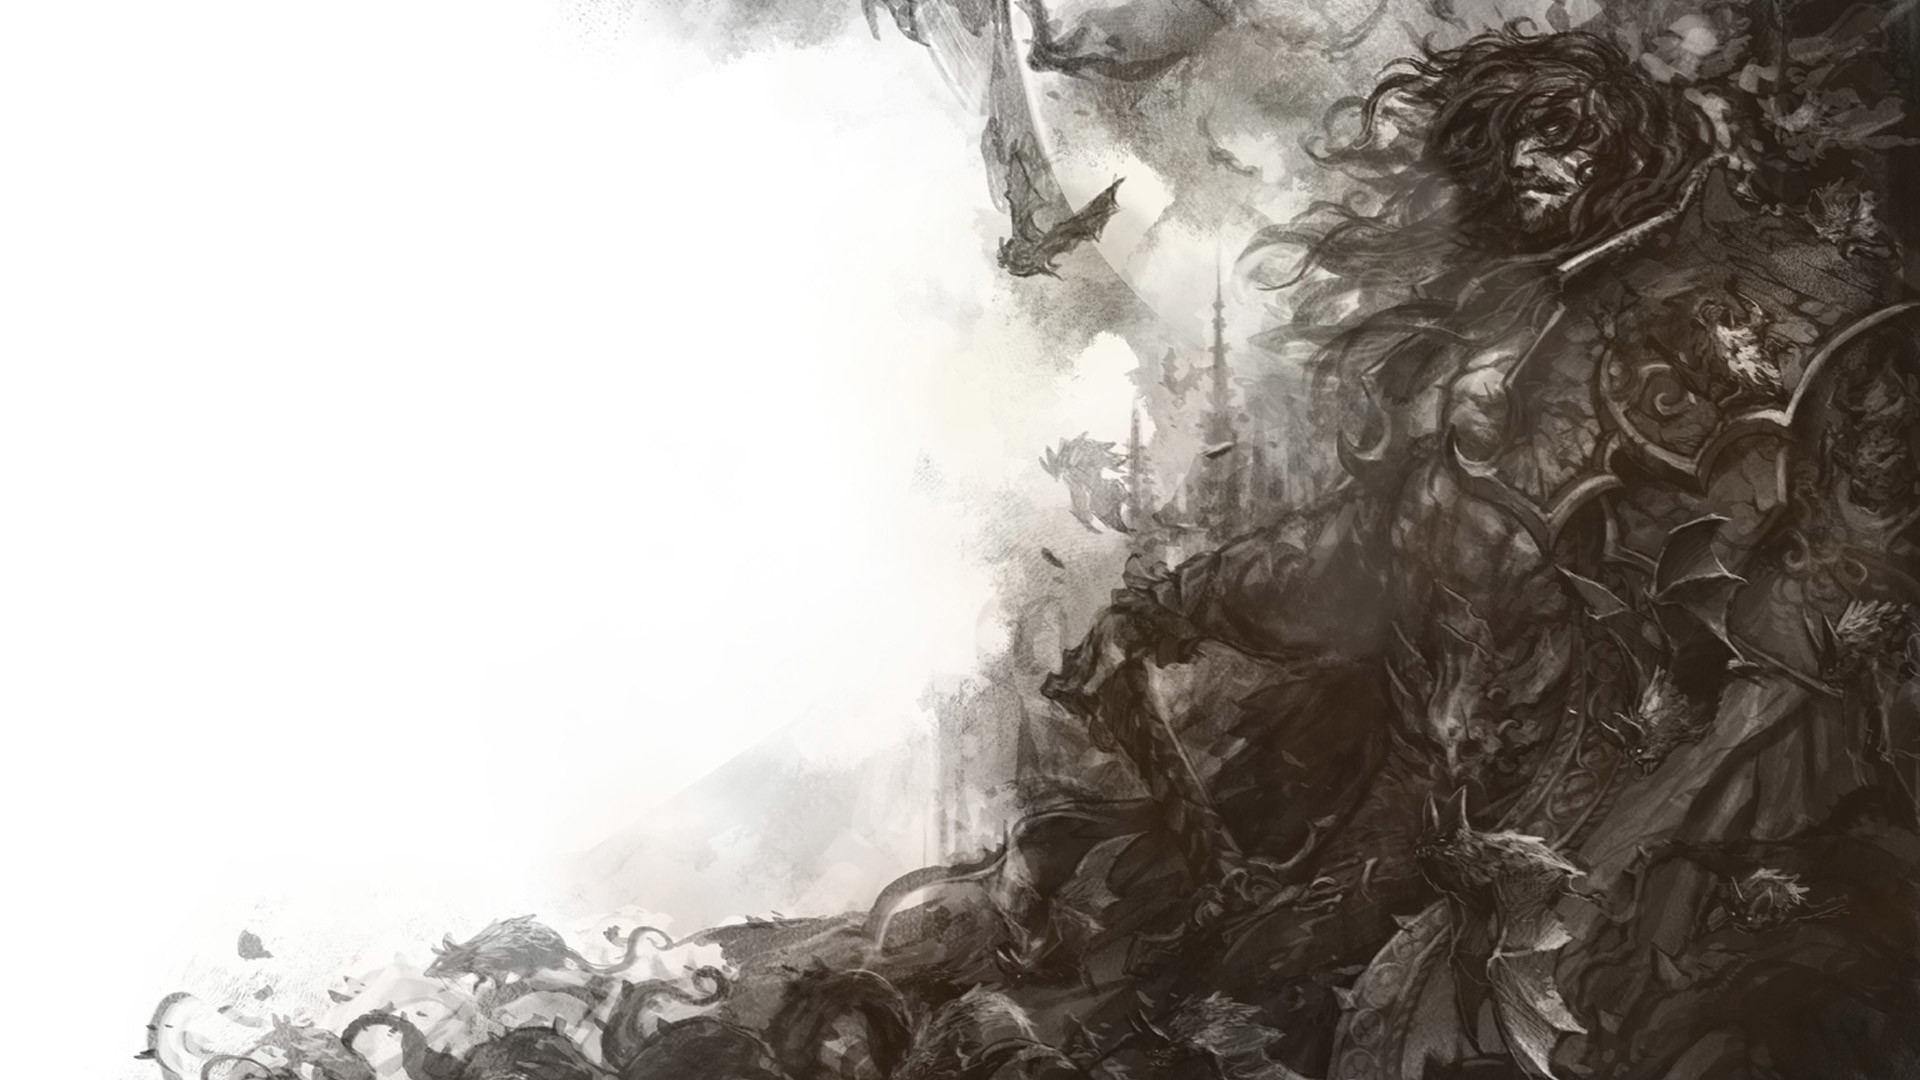 Res: 1920x1080, Castlevania Lords of Shadows 2 Wallpaper 7